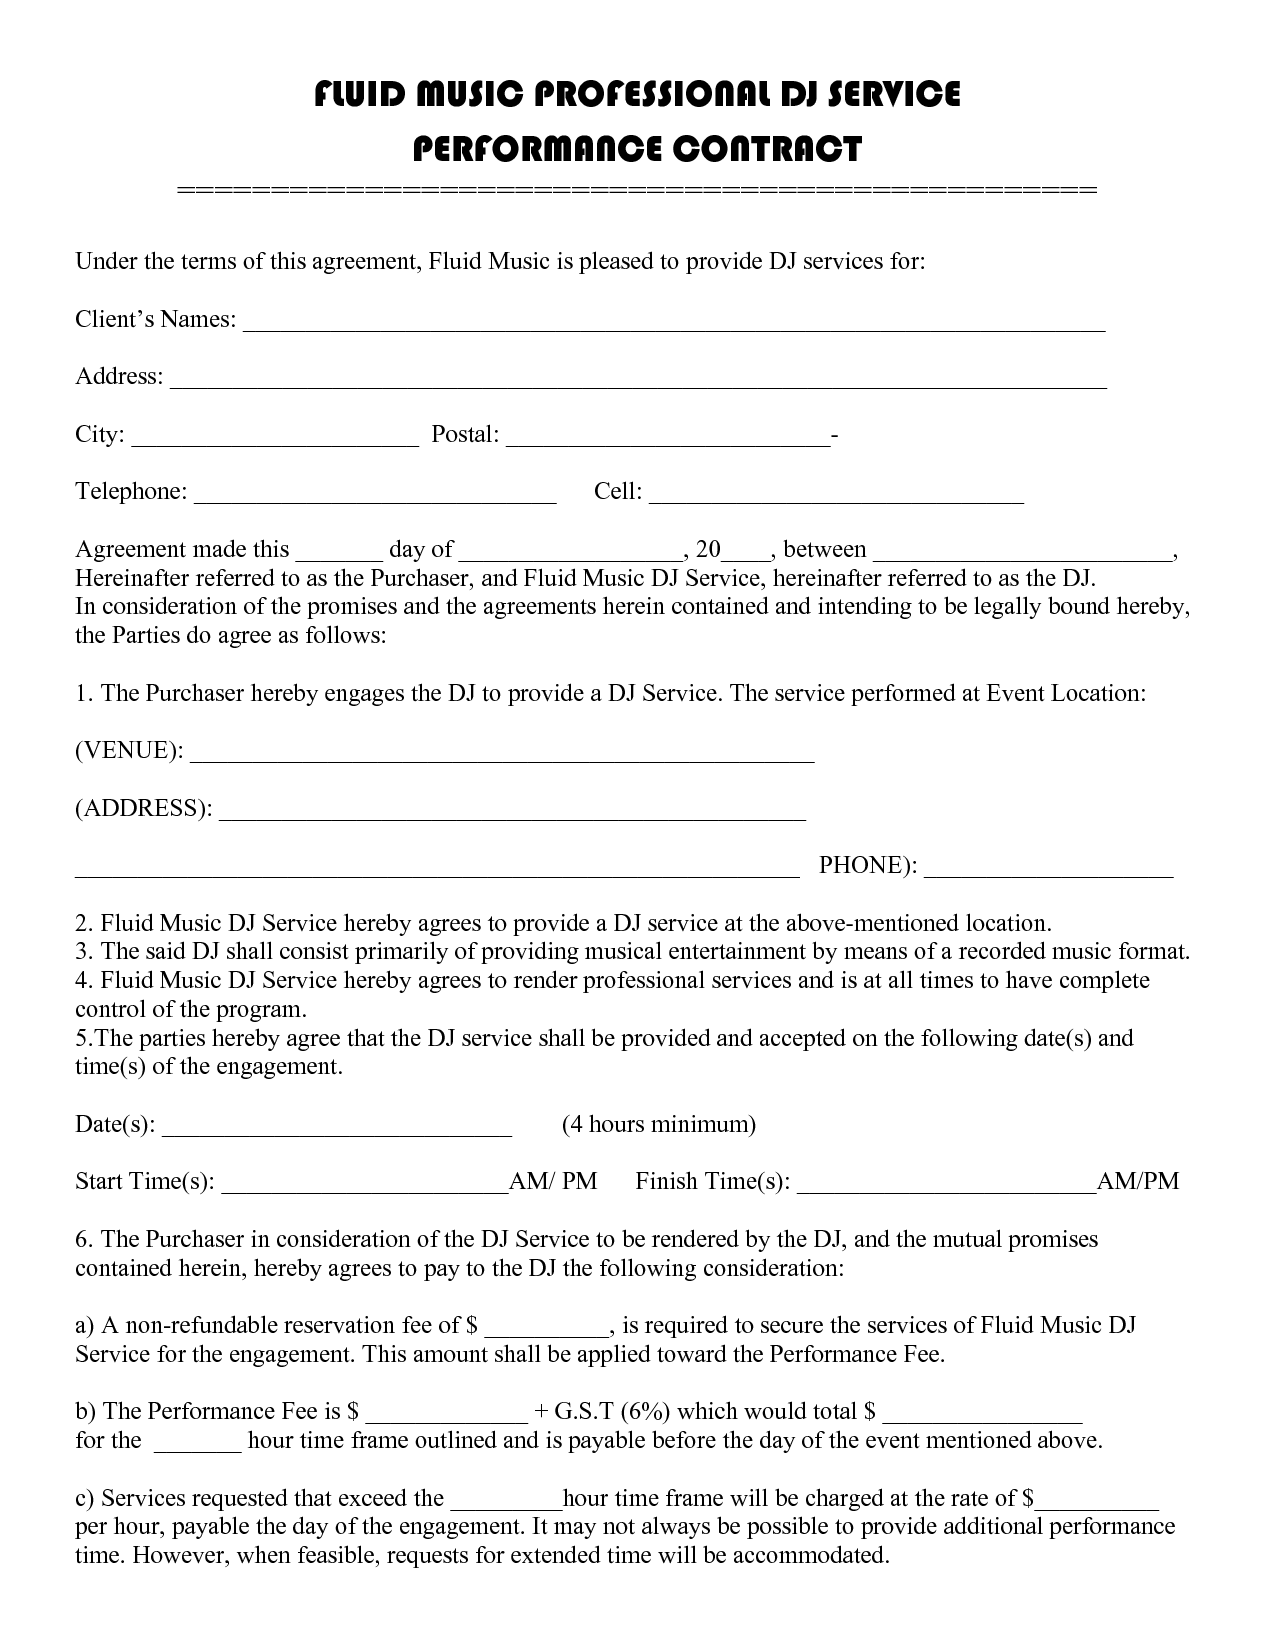 dj service performance contract template